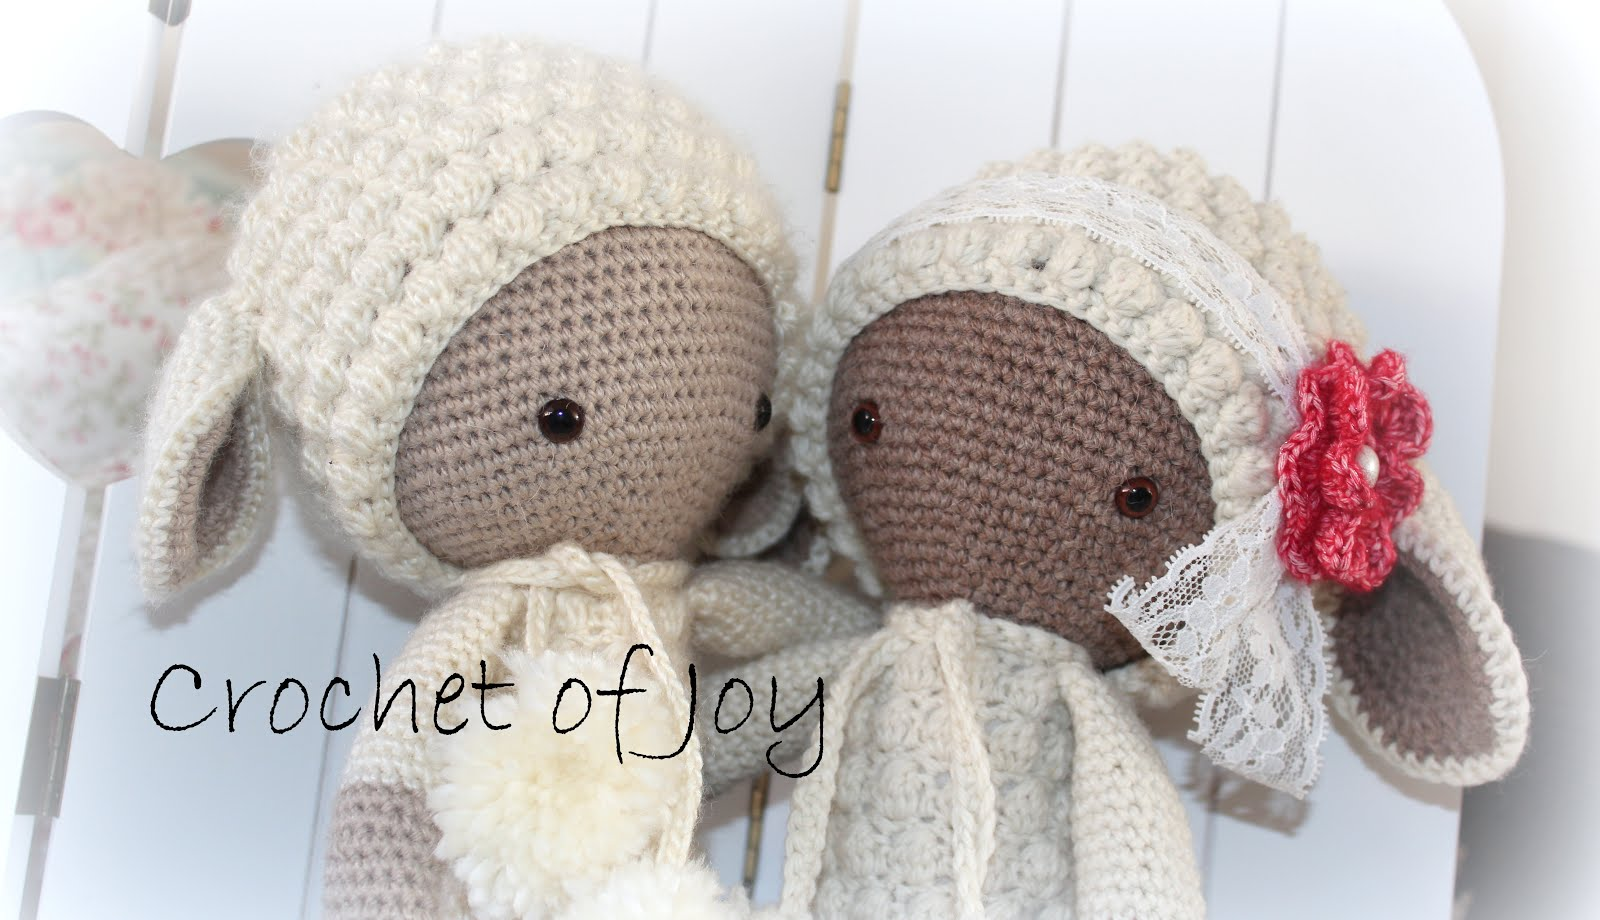 Crochet of Joy